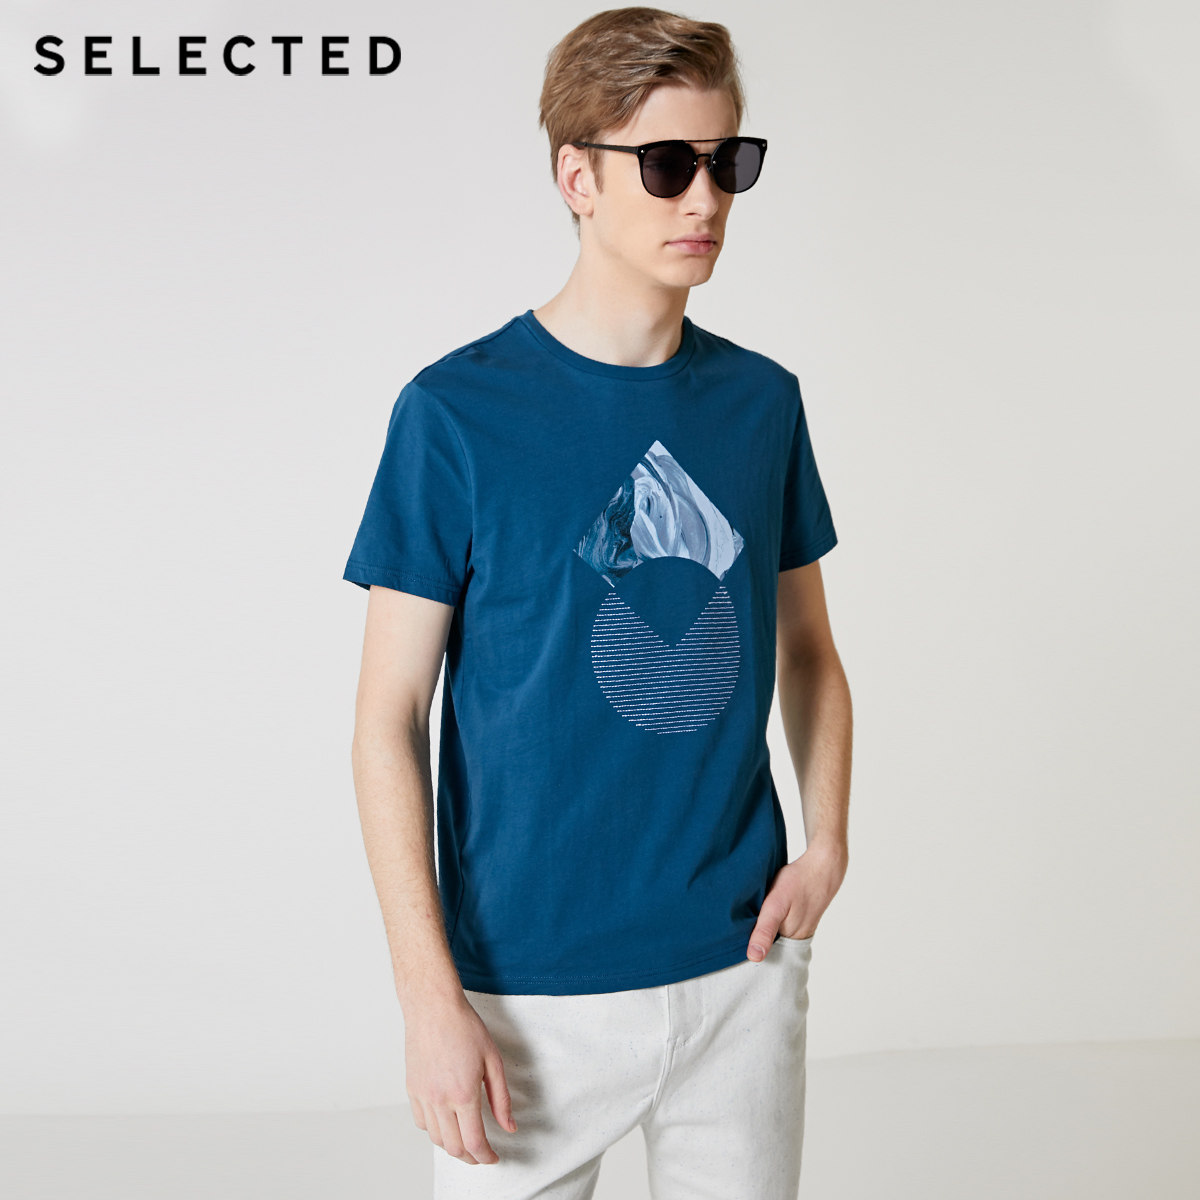 SELECTED Men's 100% Cotton Embroidered Short-sleeved T-shirt S|419201612